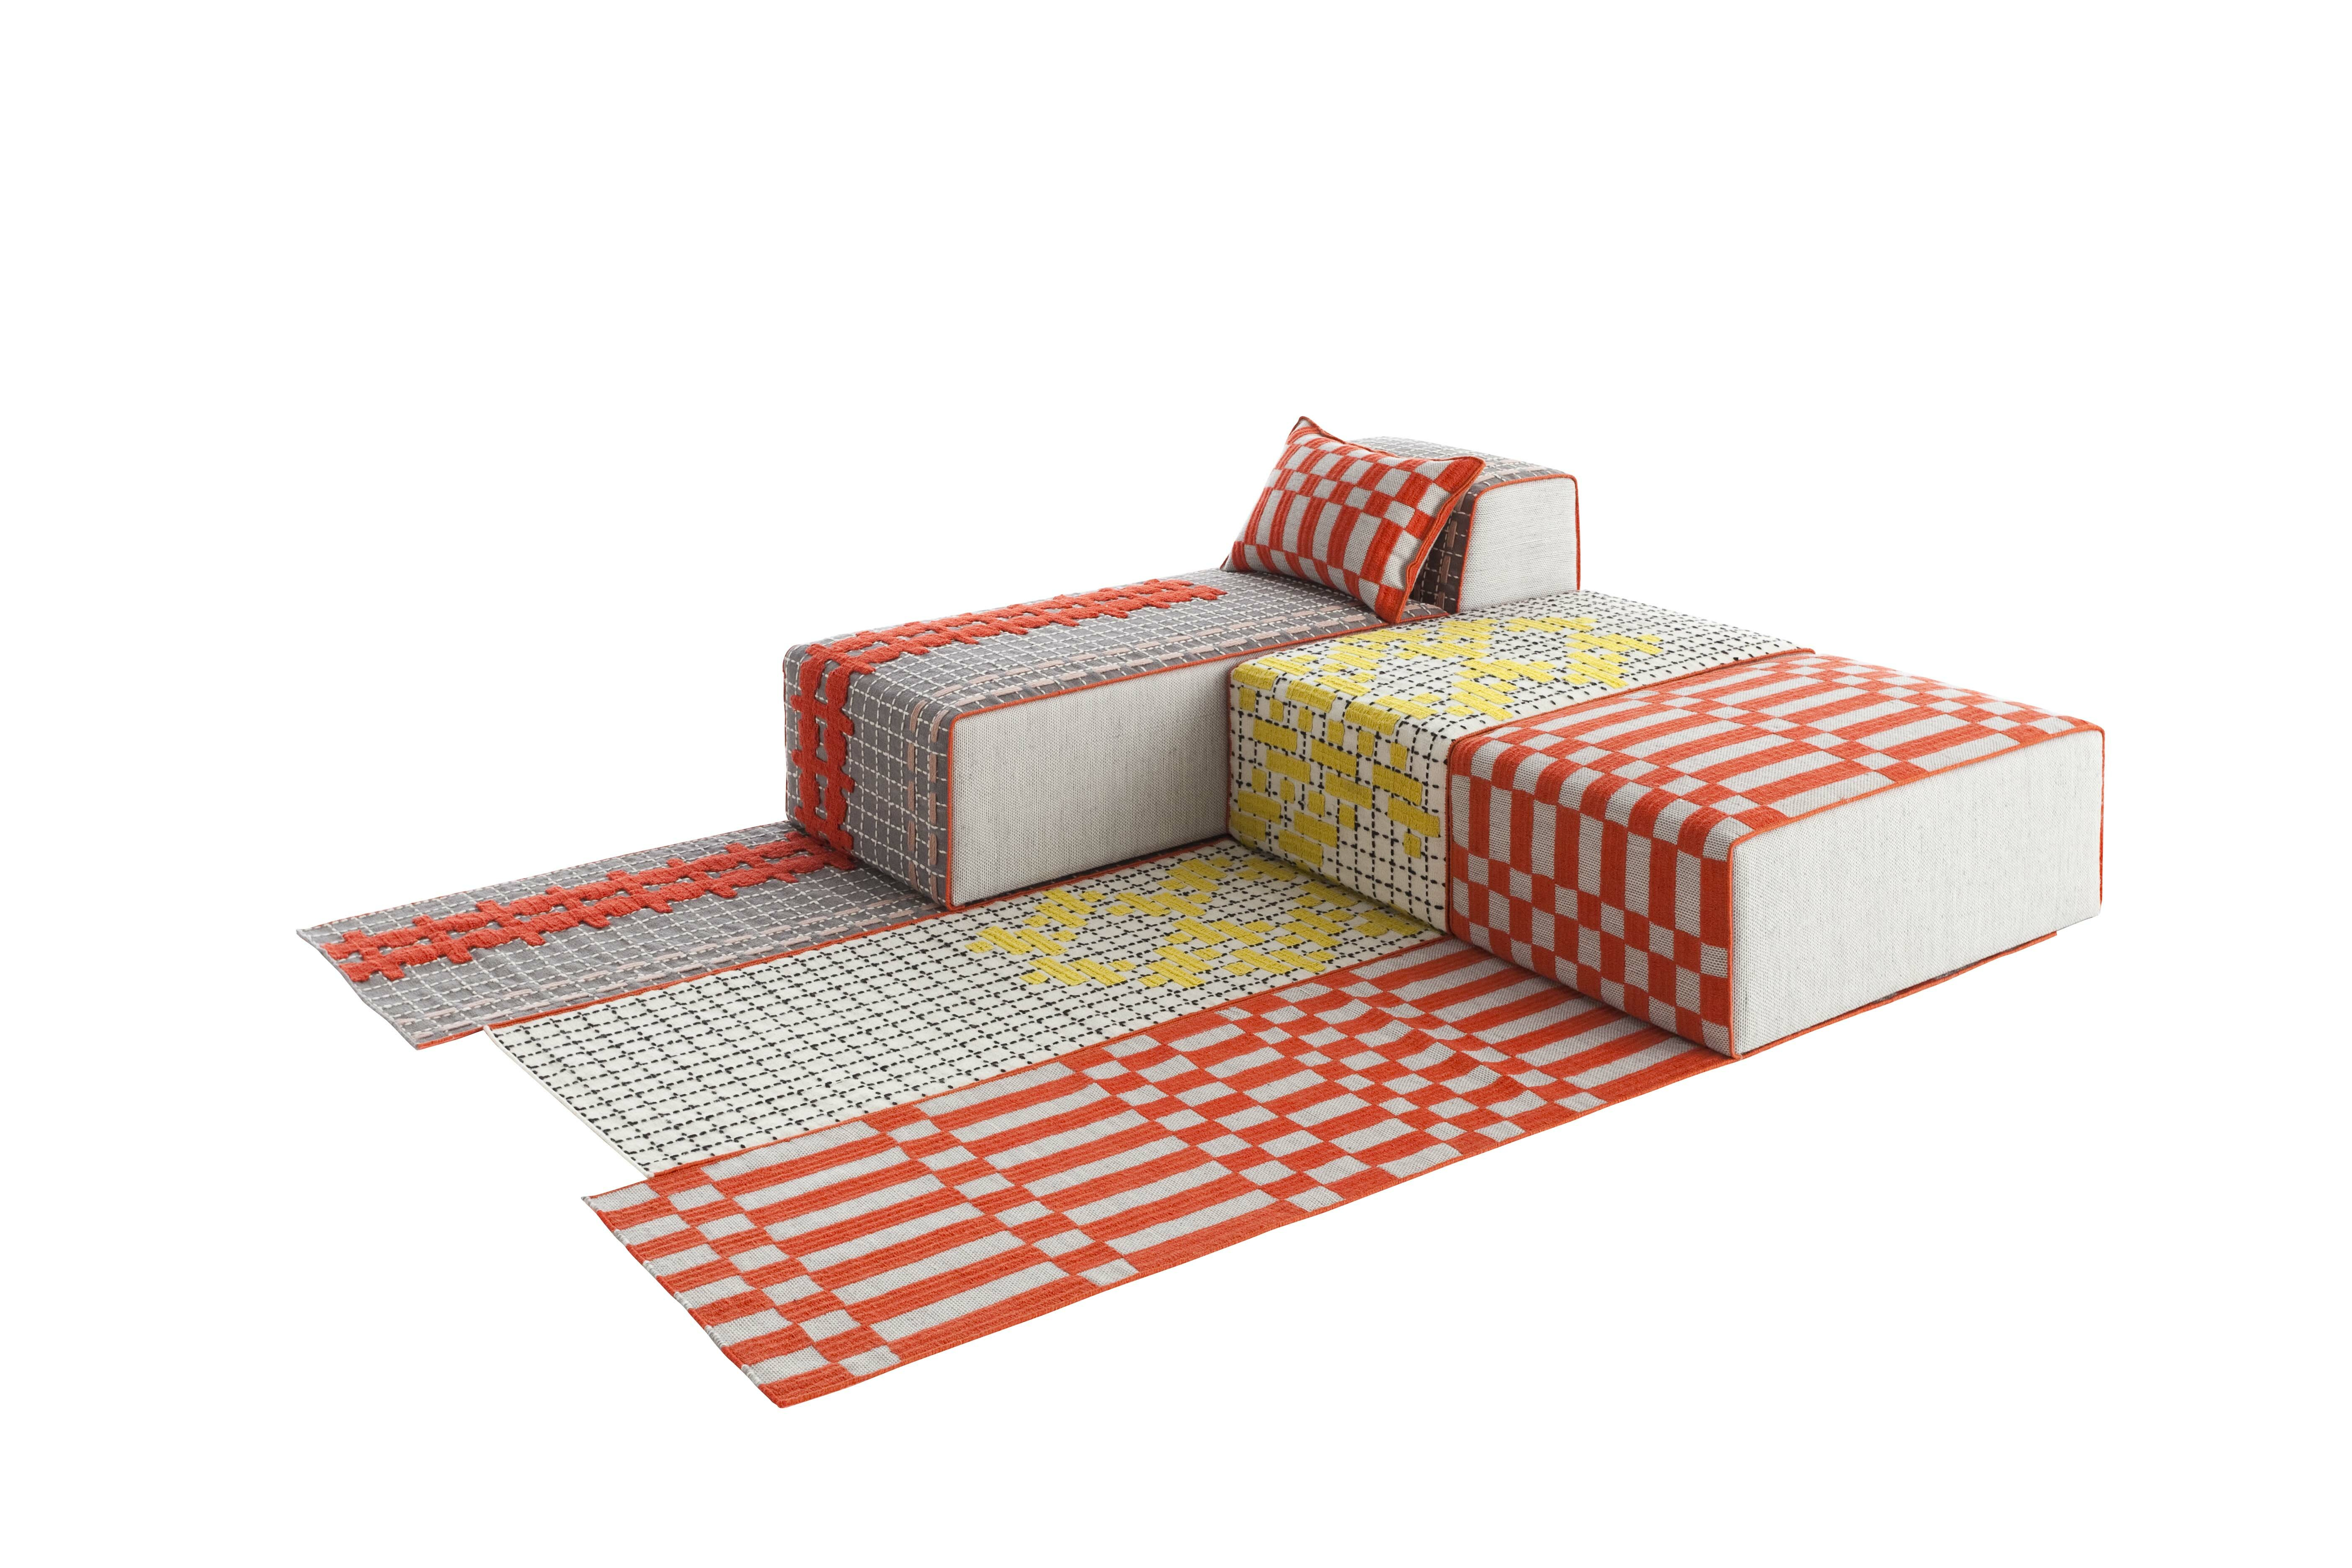 Gandia blasco bandas space single b orange area rug wayfair